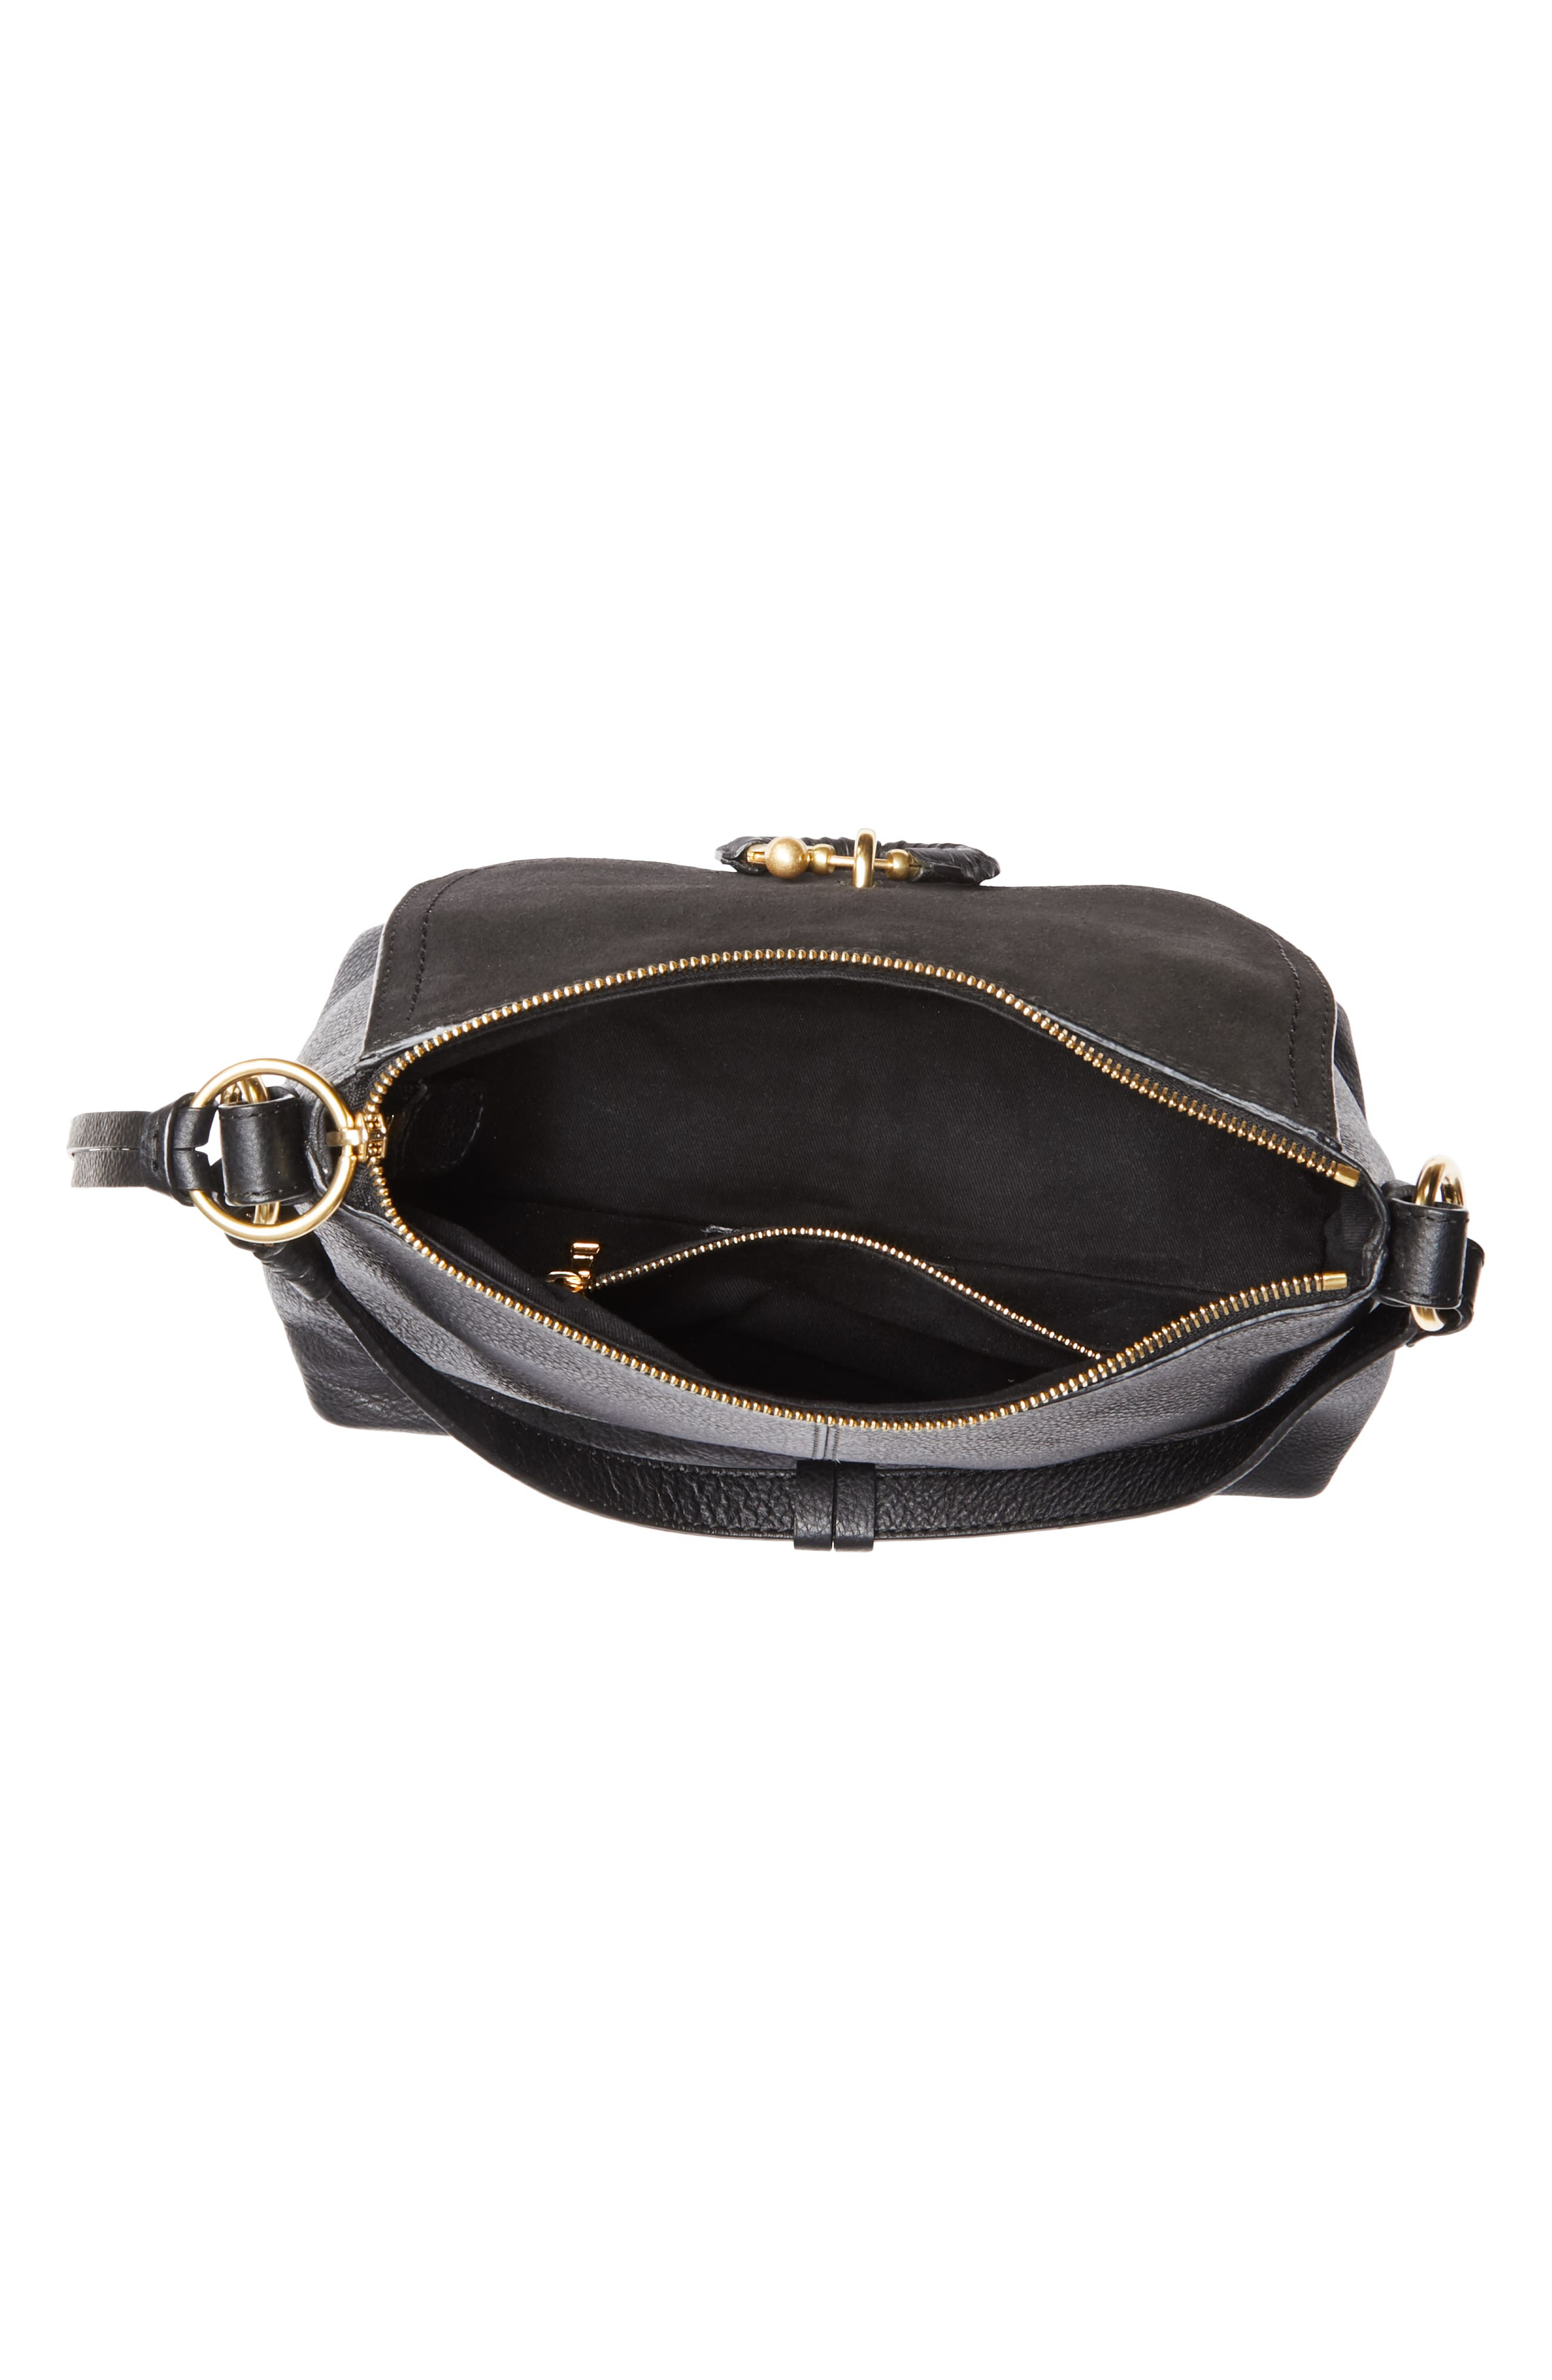 SEE BY CHLOÉ, Small Joan Suede & Leather Crossbody Bag, Alternate thumbnail 4, color, BLACK